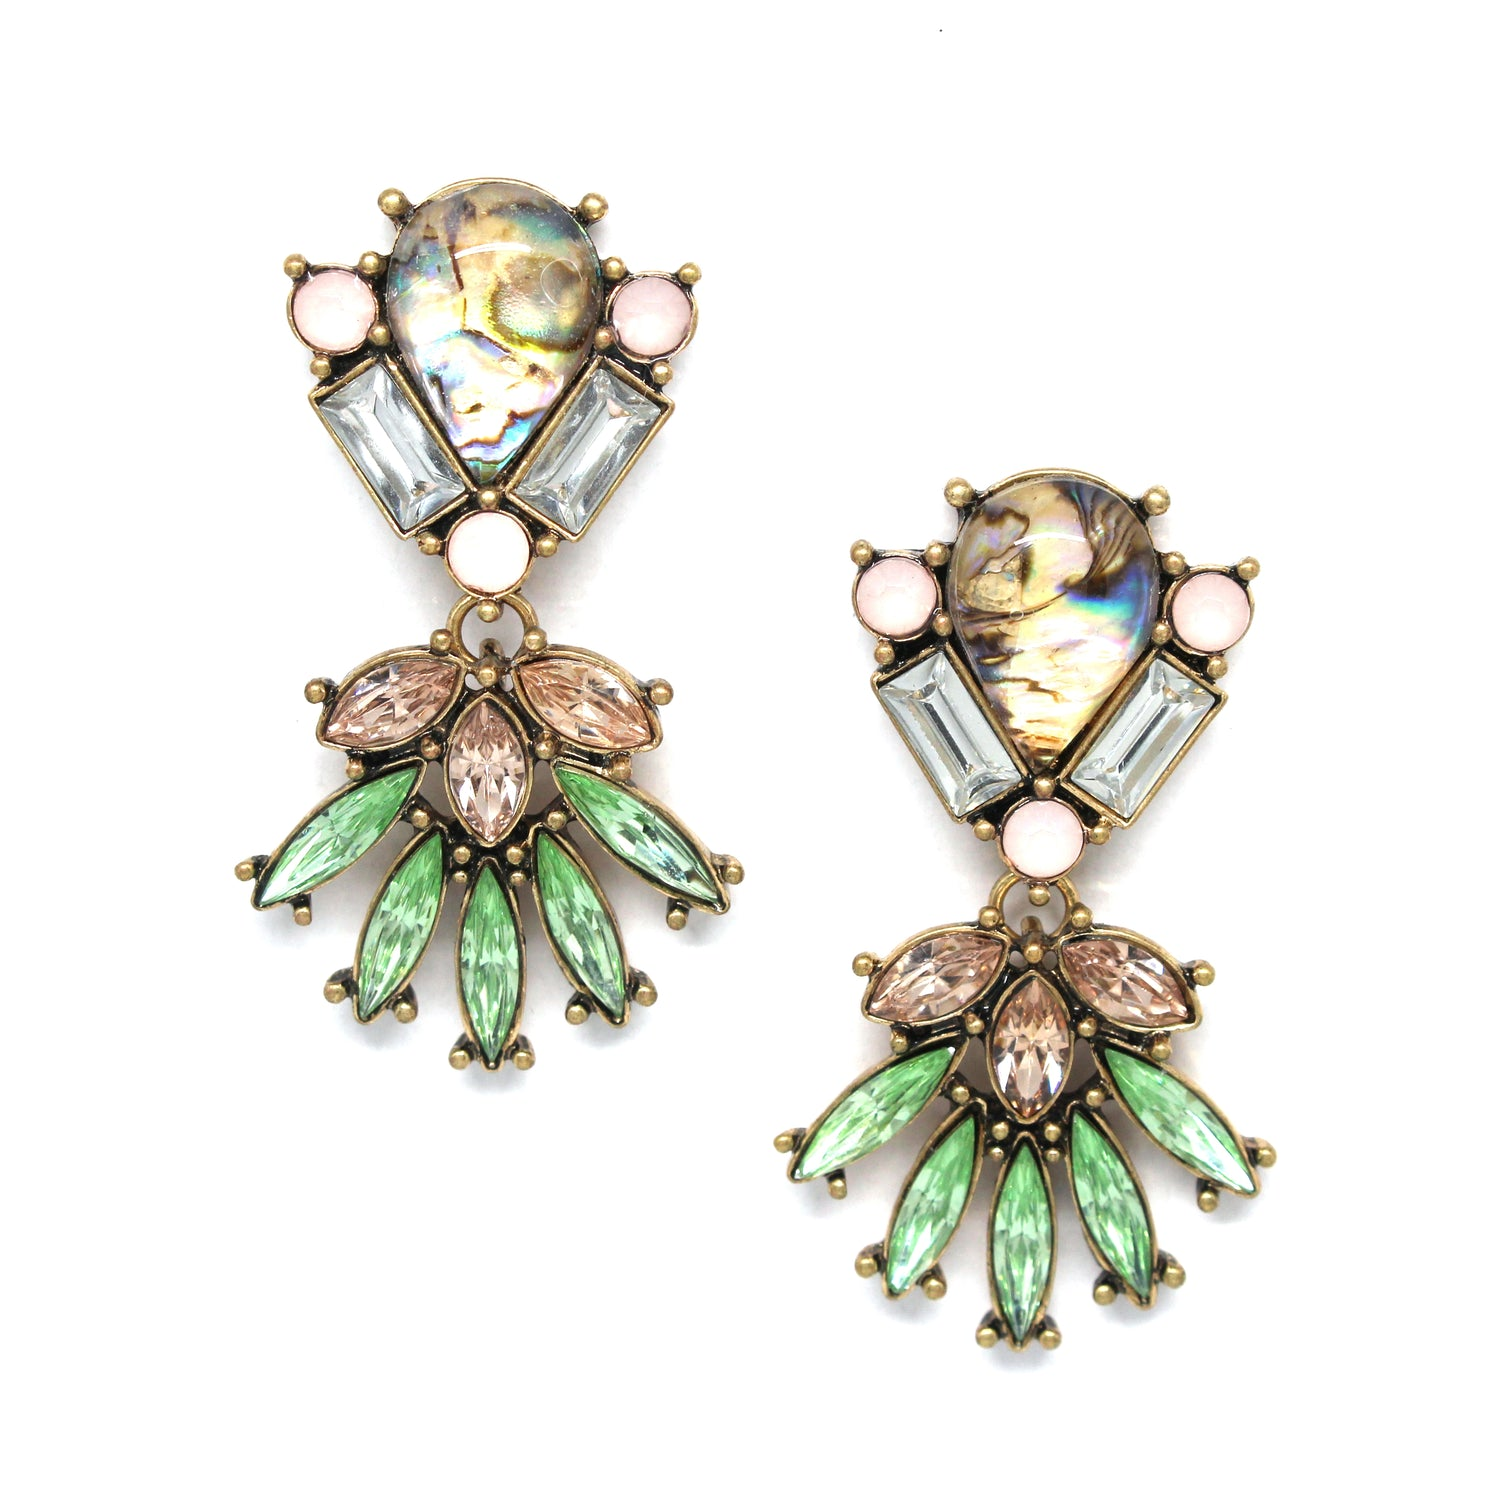 Majestic Ann Statement Earrings